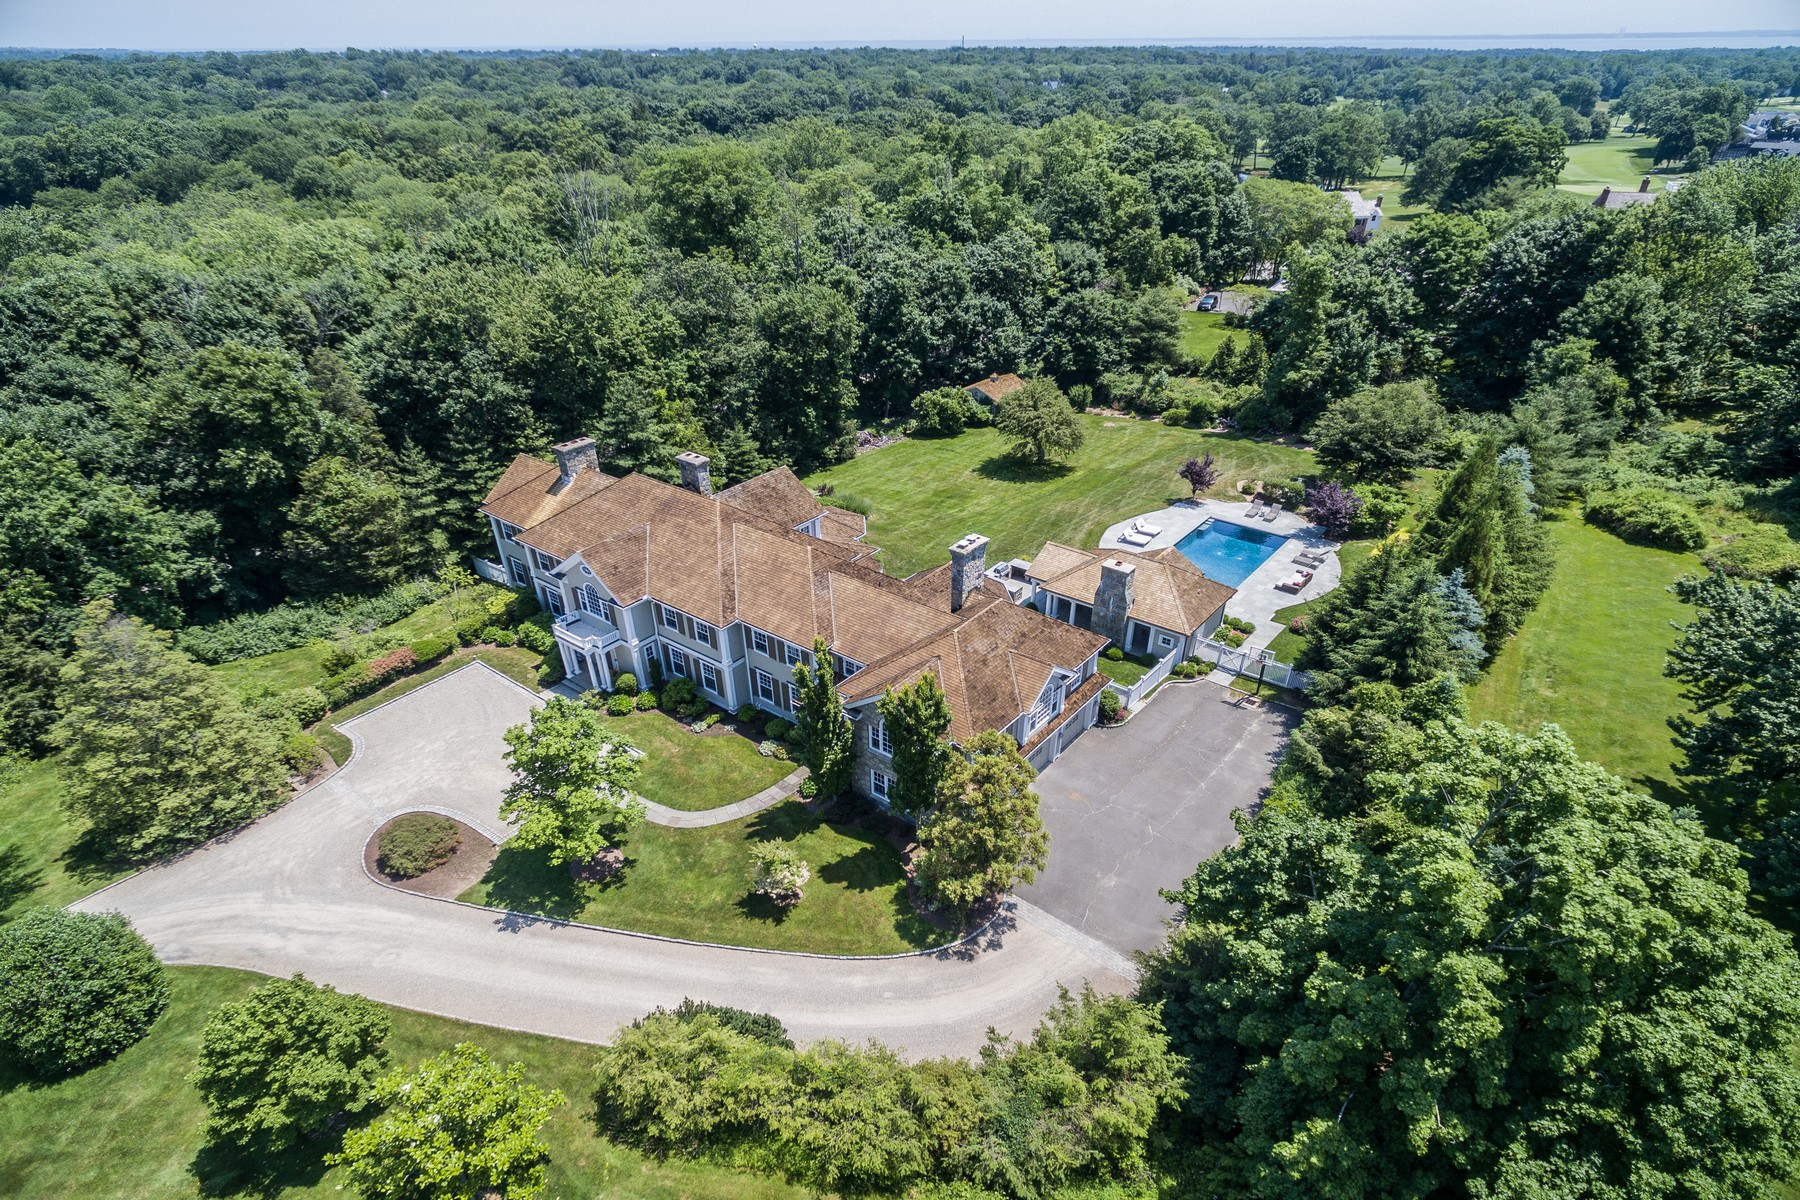 Casa Unifamiliar por un Venta en Magnificent Darien Estate 38 Pembroke Road Darien, Connecticut 06820 Estados Unidos